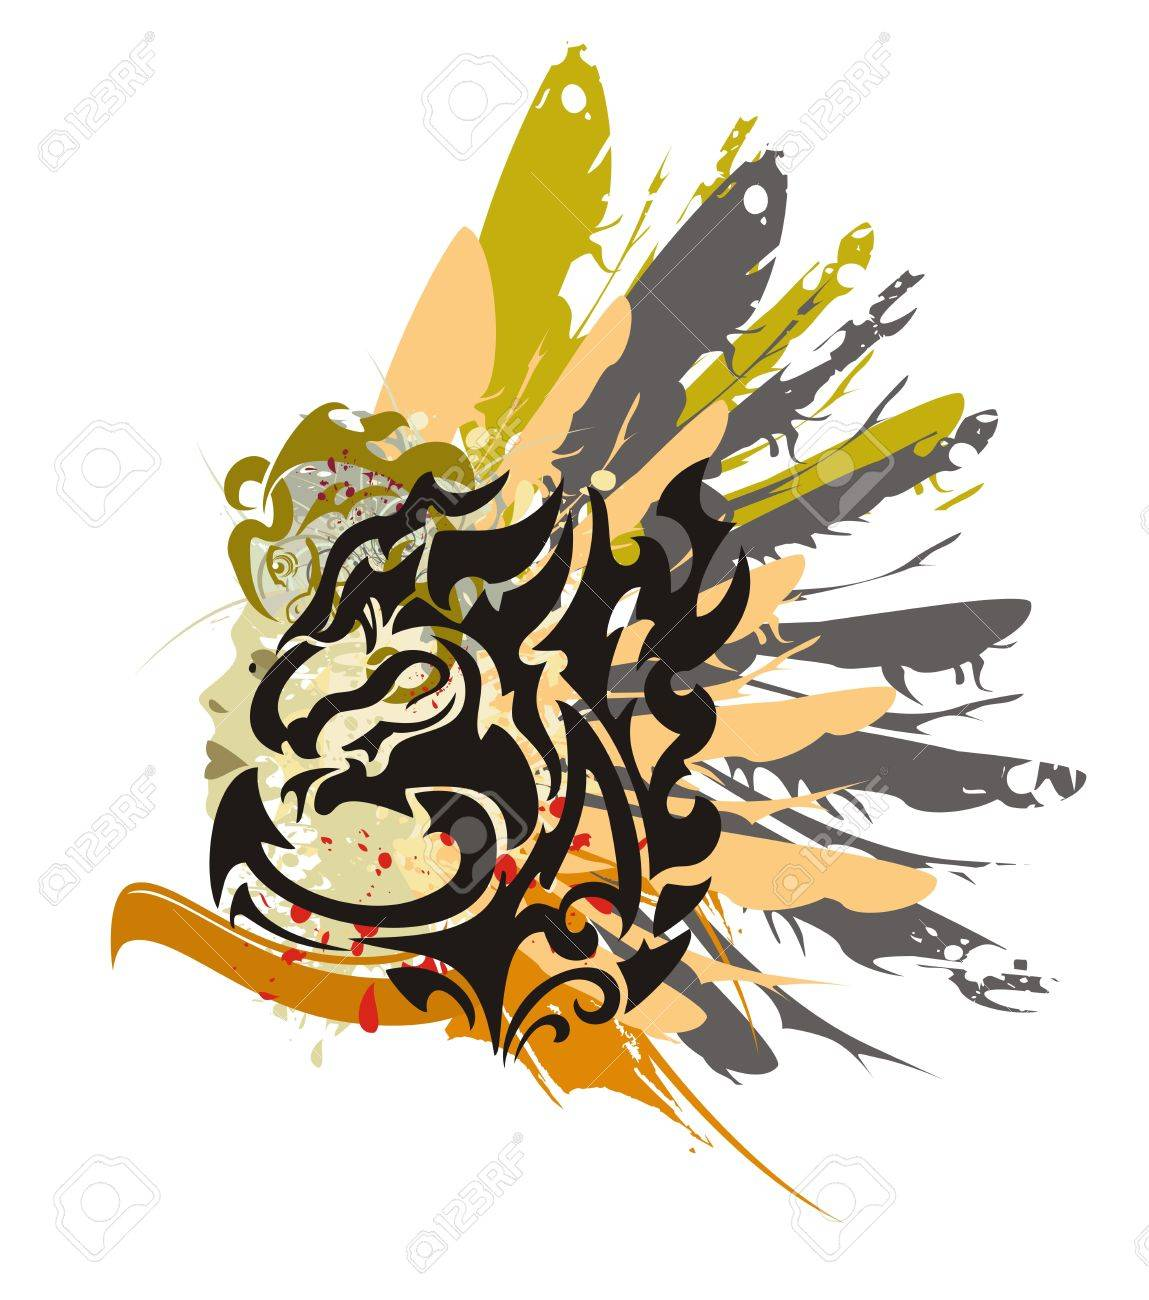 615cda4fa Grunge black dragon symbol - splashes in a woman's face with the head and a  wing